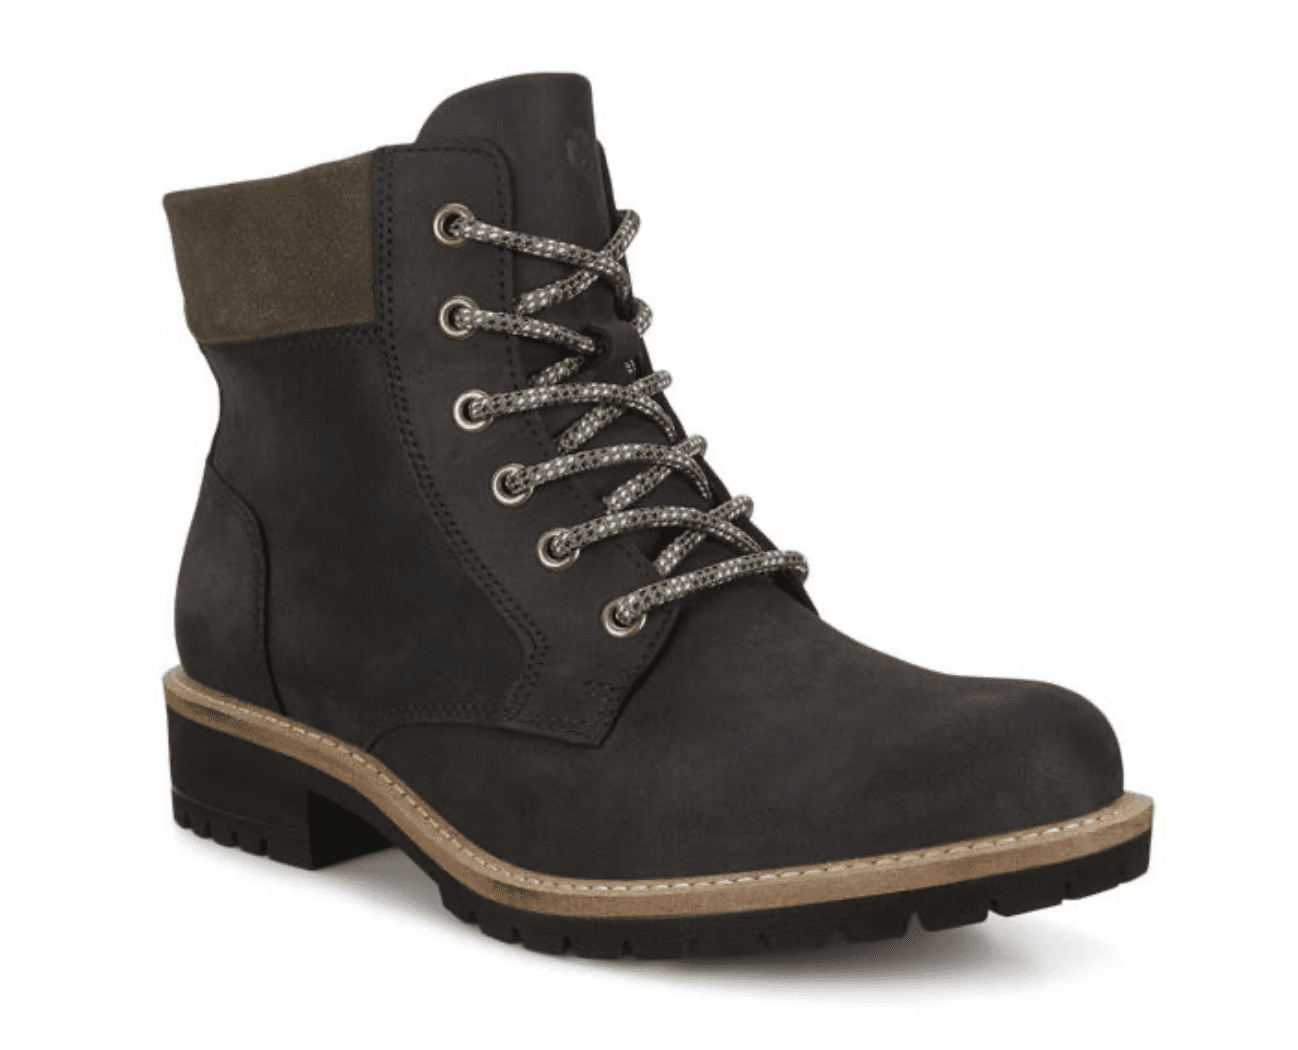 Ecco: Extra 50% off Elaina and Jamestown Boots